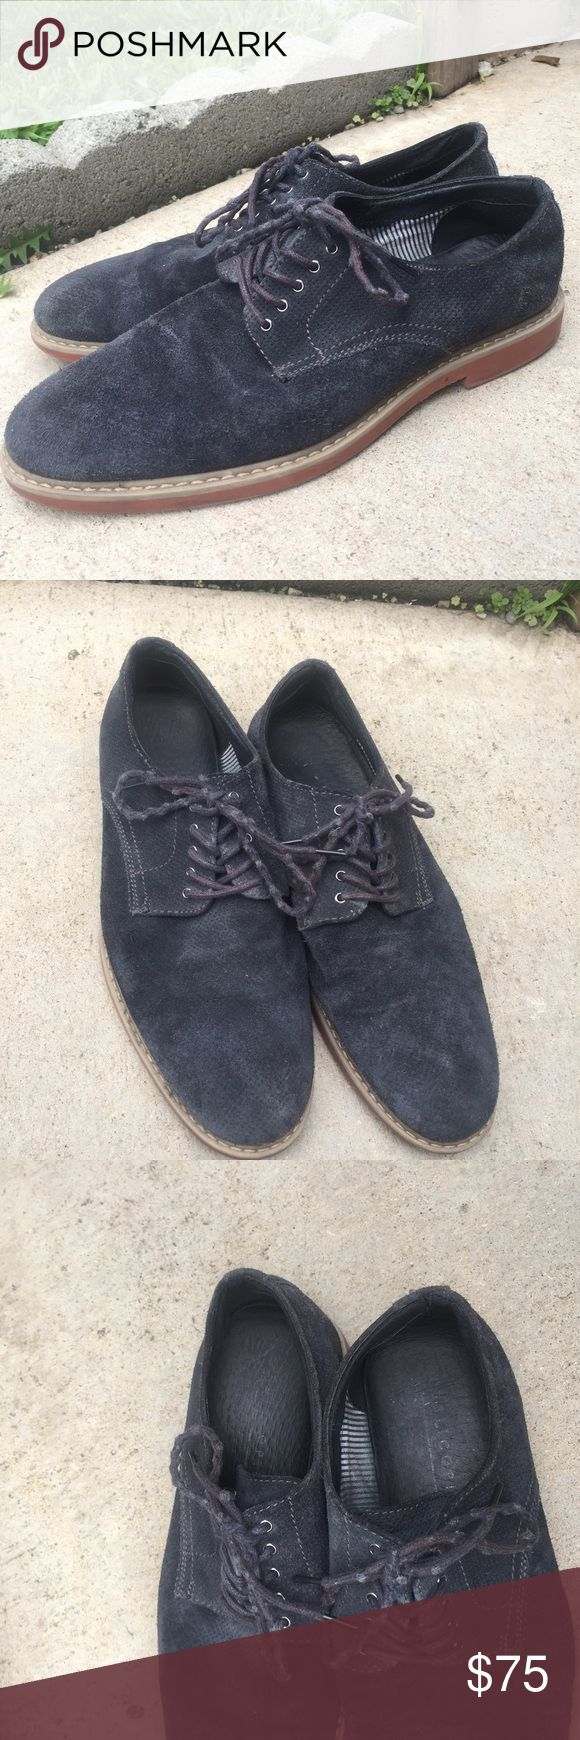 Public Opinion Navy Oxfords with Orange bottom Nice navy oxfords. Worn before as shown in pictures. The shoelaces are a bit shriveled and the the soles are rubbed out. Public Opinion Shoes Oxfords & Derbys